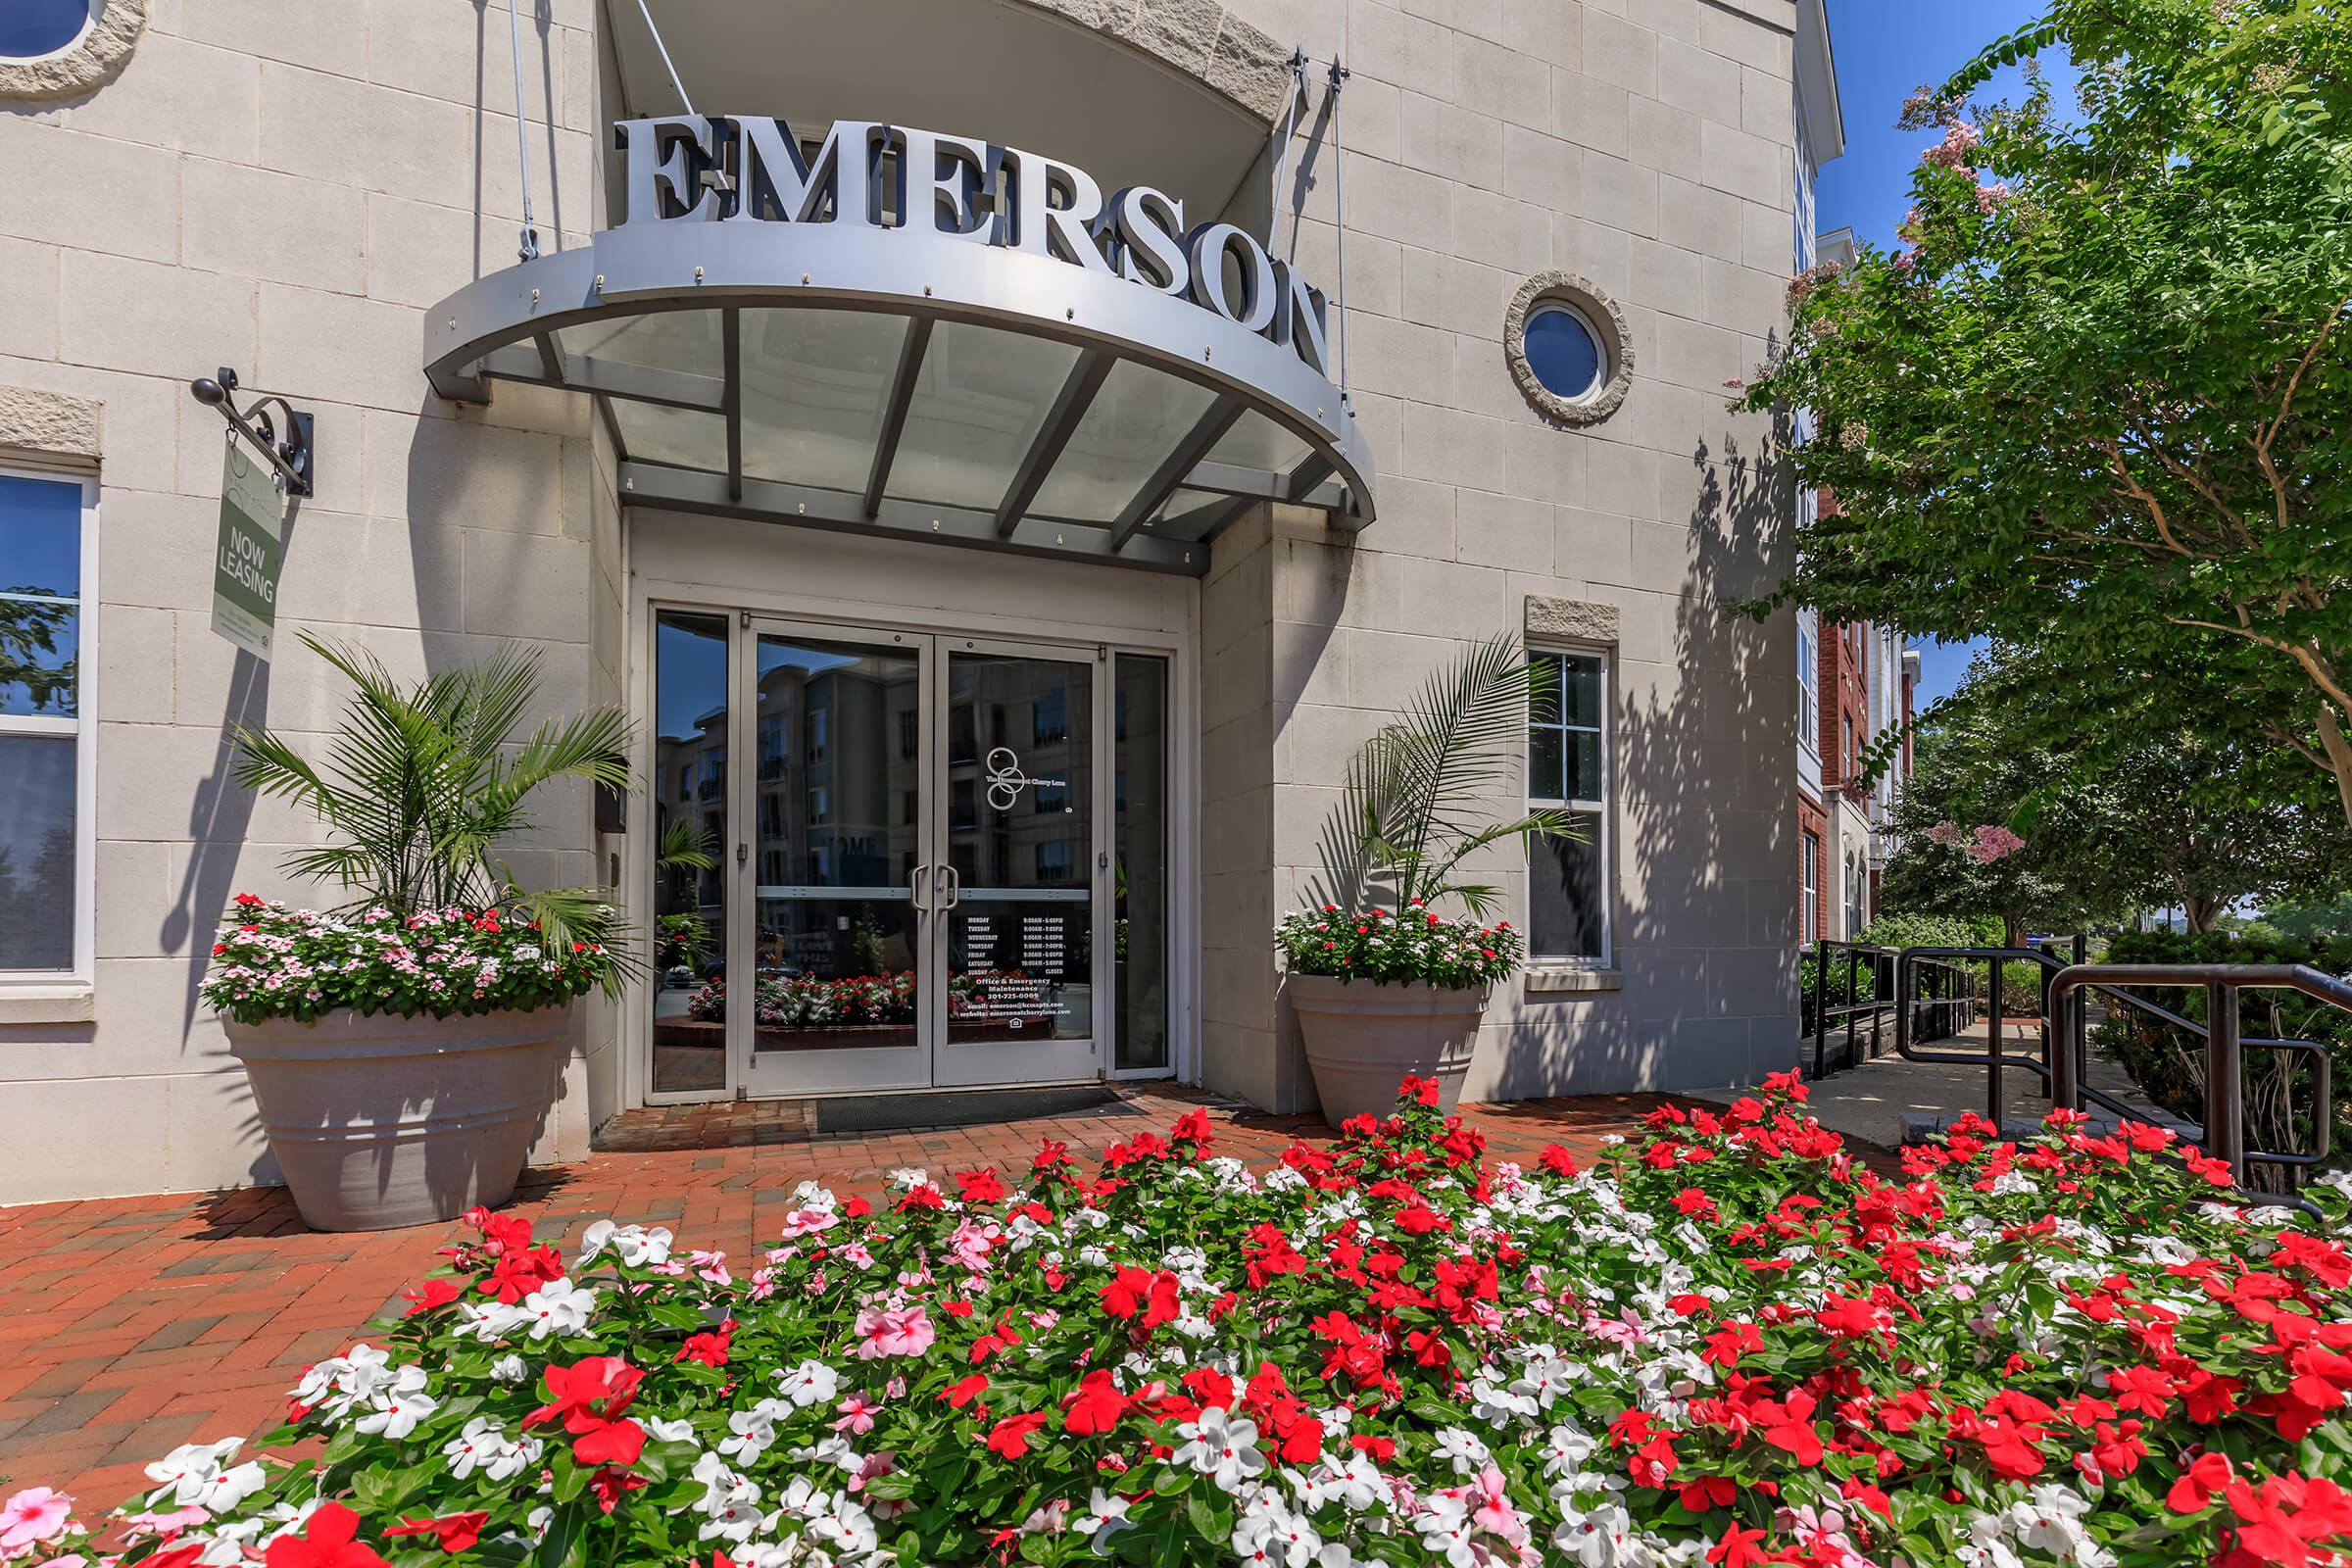 Landscaping at Emerson at Cherry Lane Apartments in Laurel, MD